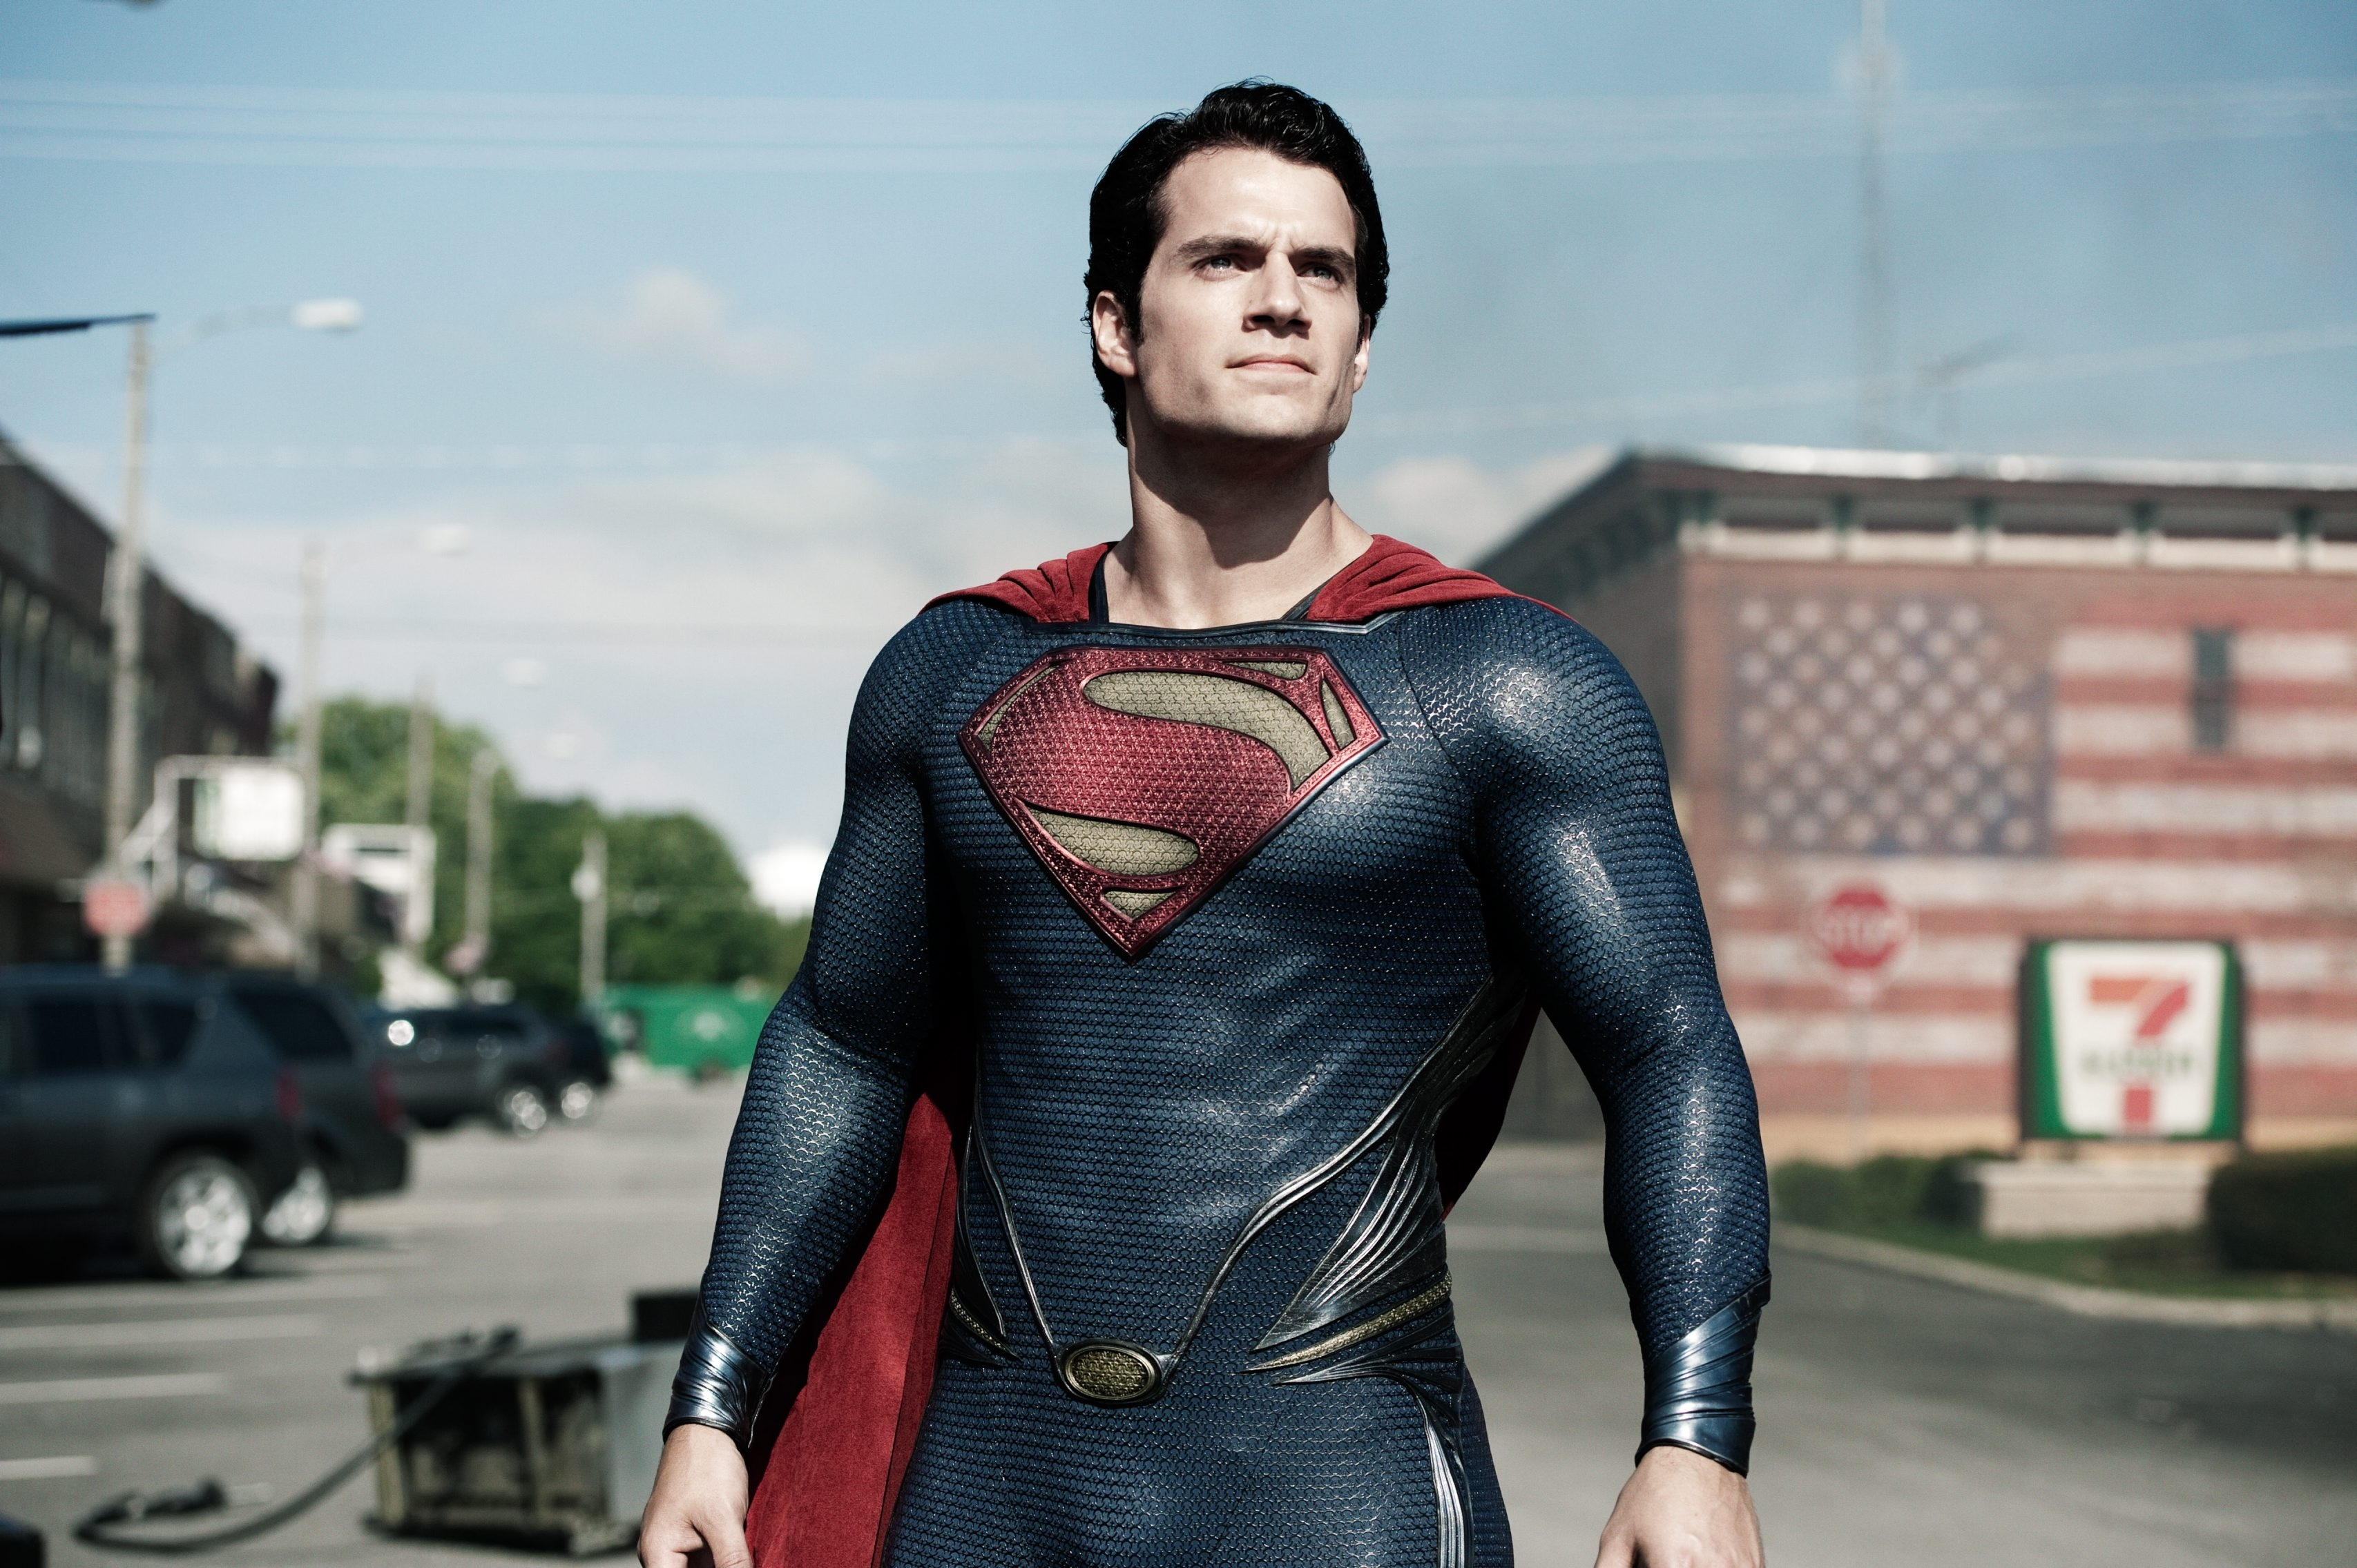 """Henry Cavill stars as Superman in """"Man of Steel,"""" an exploration of his origins and adjustment to life on Earth."""